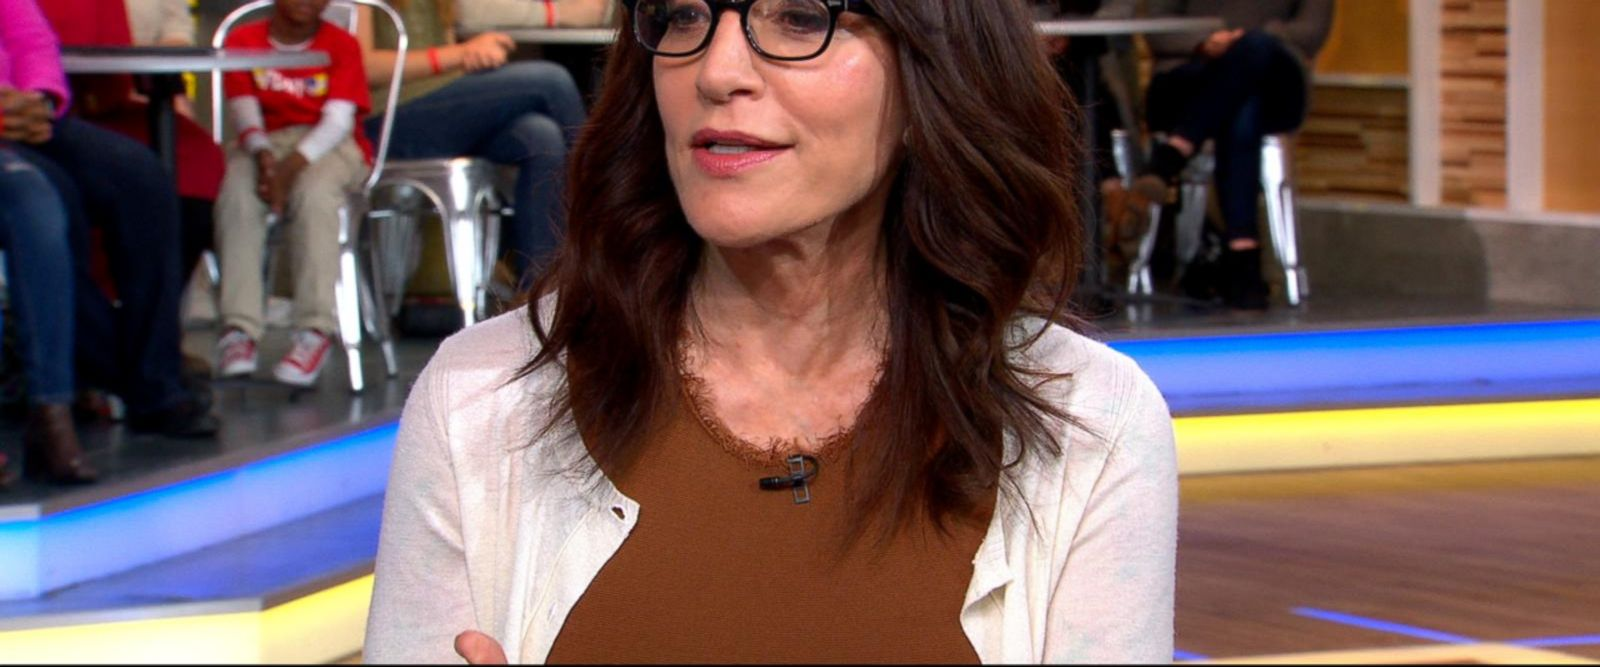 VIDEO: Katey Sagal opens up about her past drug addiction in new memoir